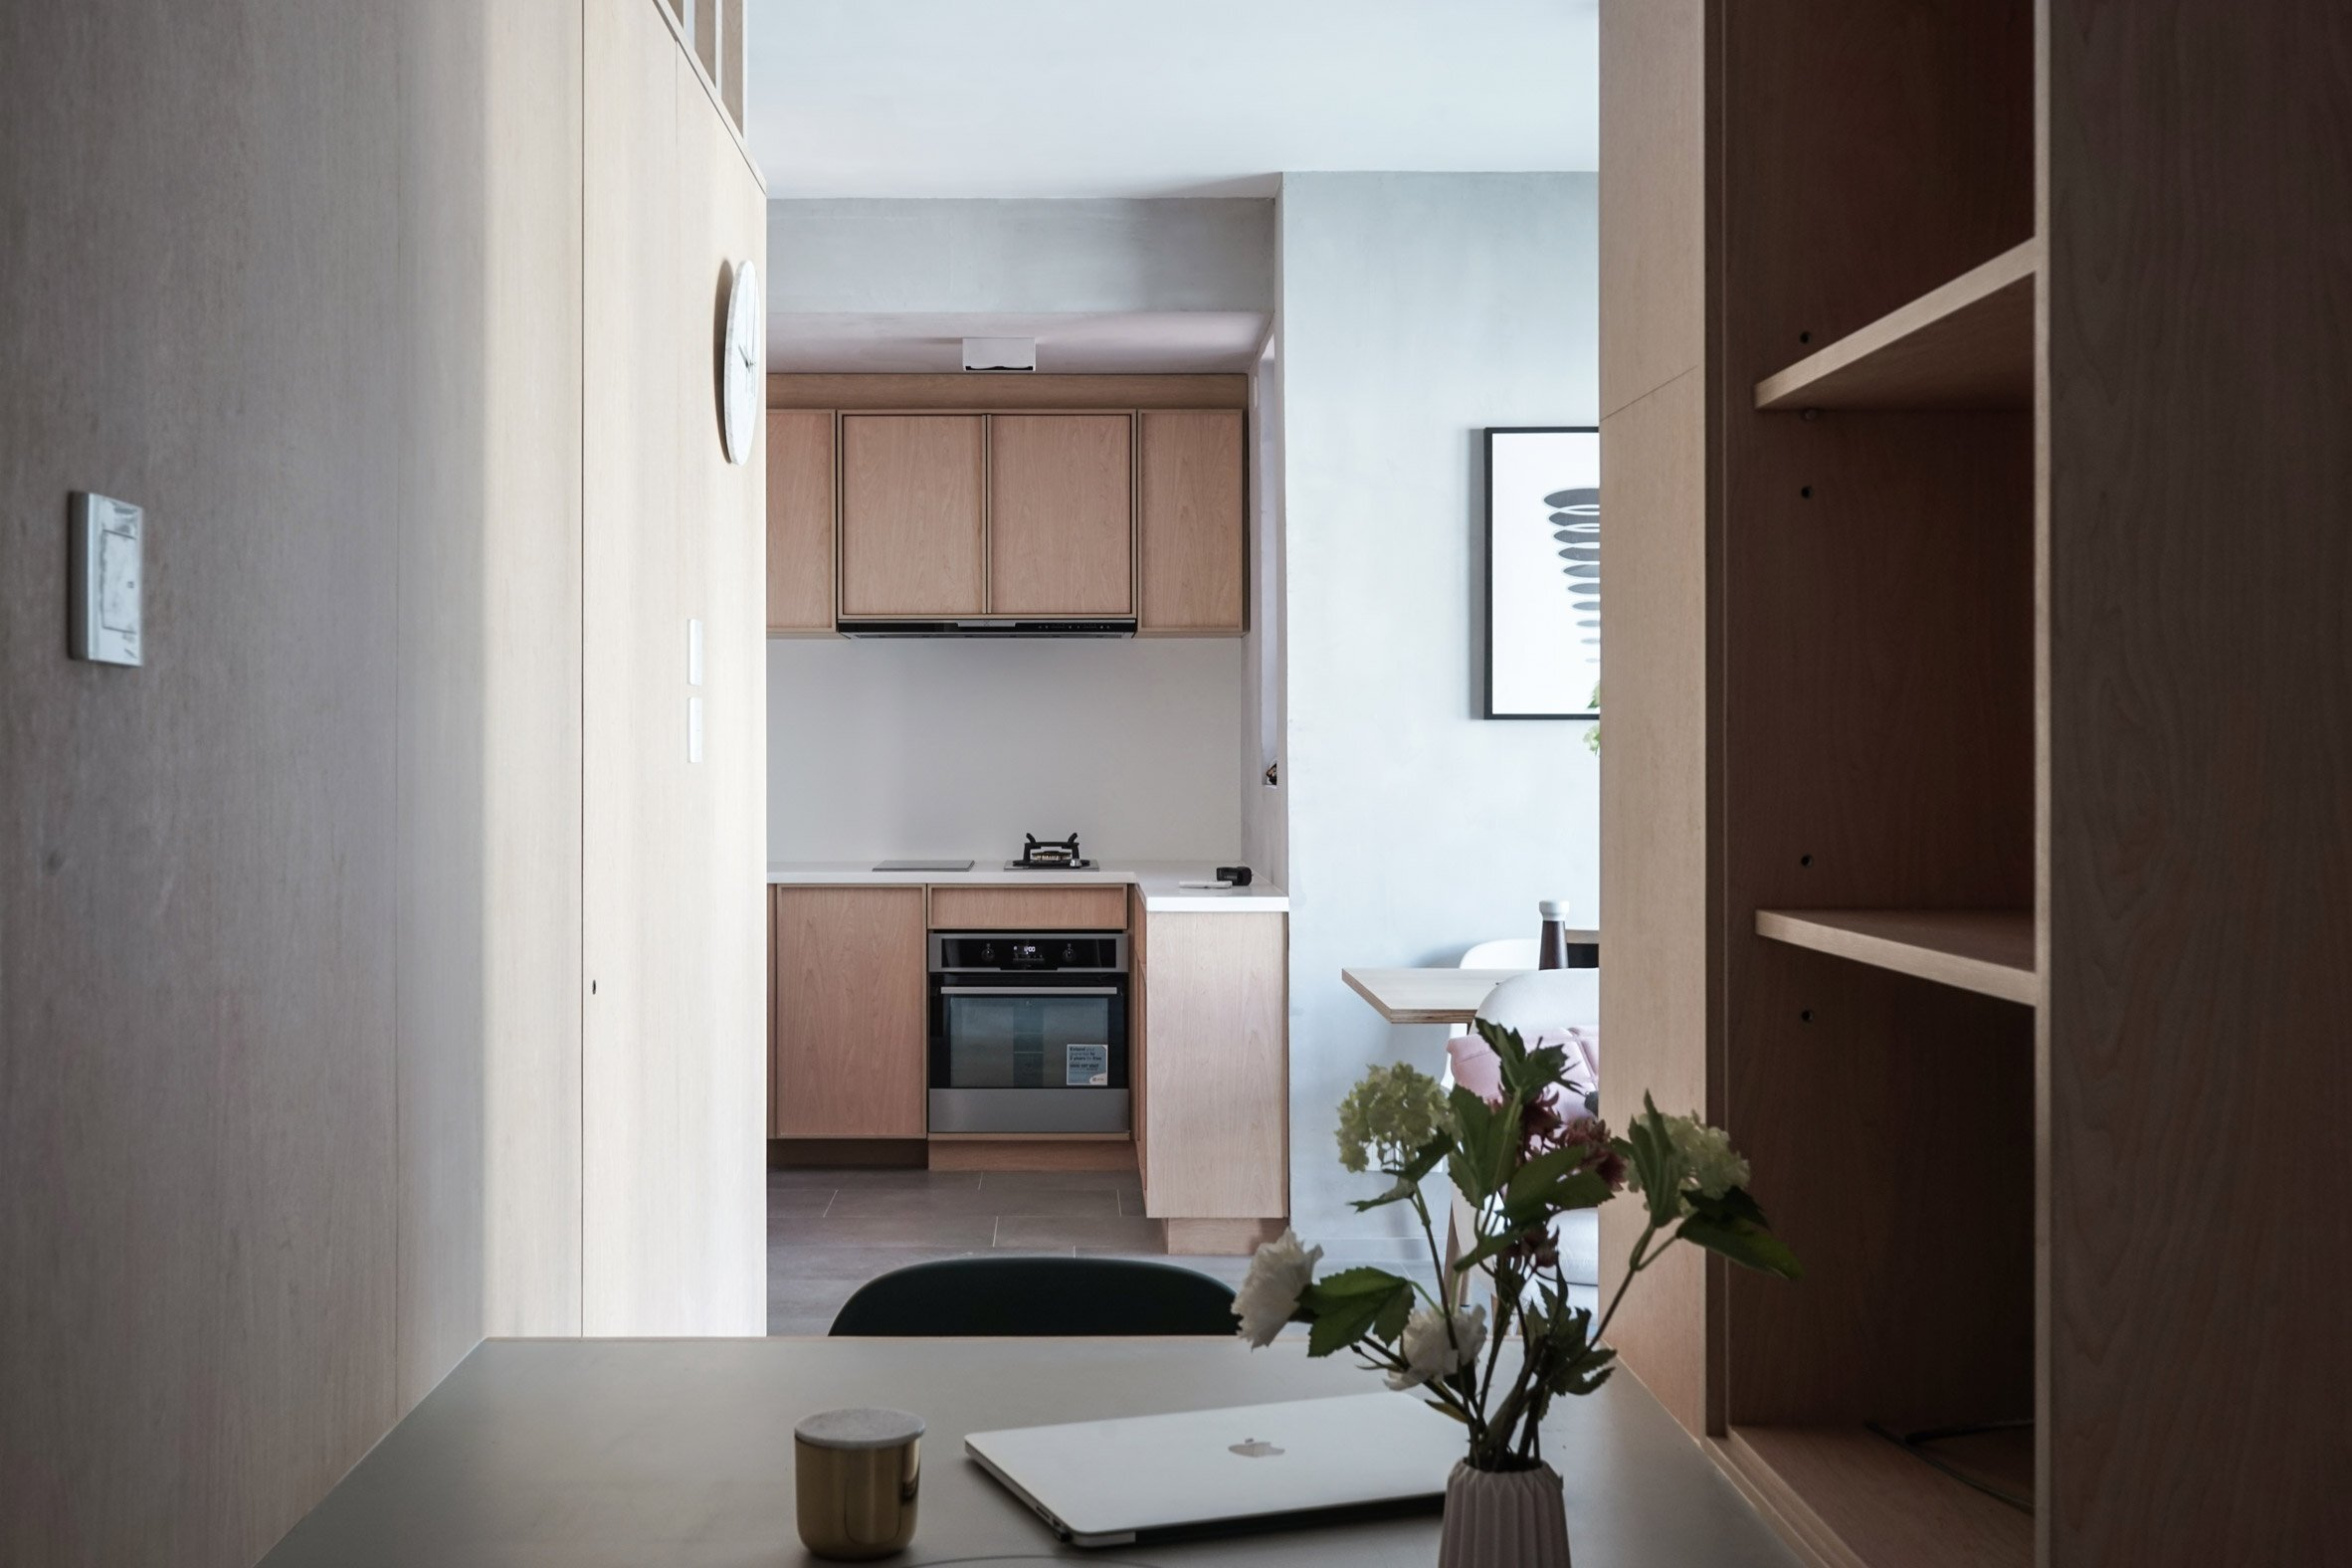 kevin-apartment-jaak-hong-kong-kitchen-humble-homes